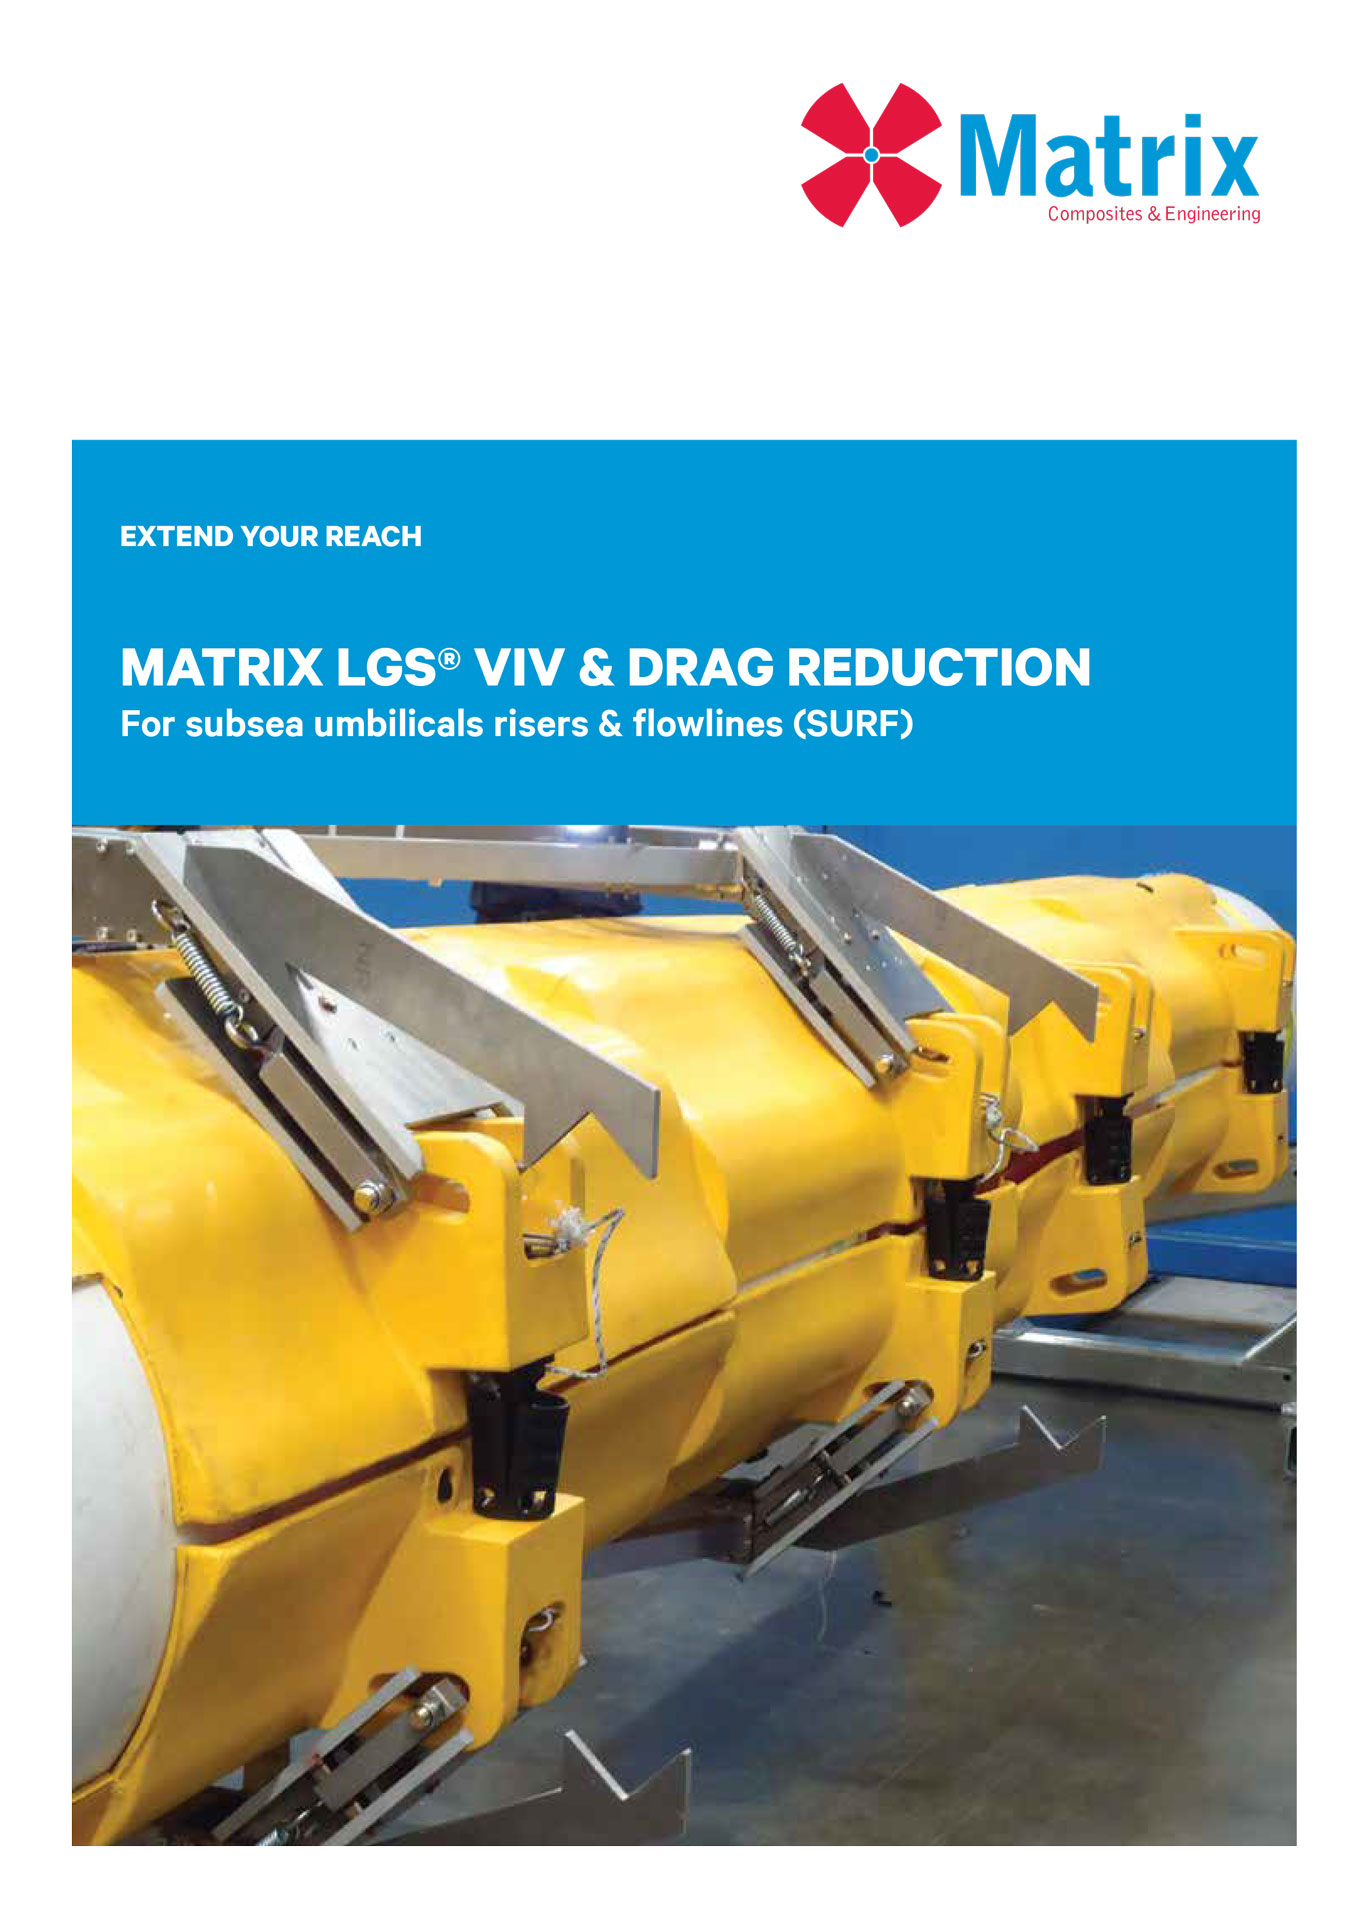 Matrix LGS® VIV & Drag Reduction for SURF